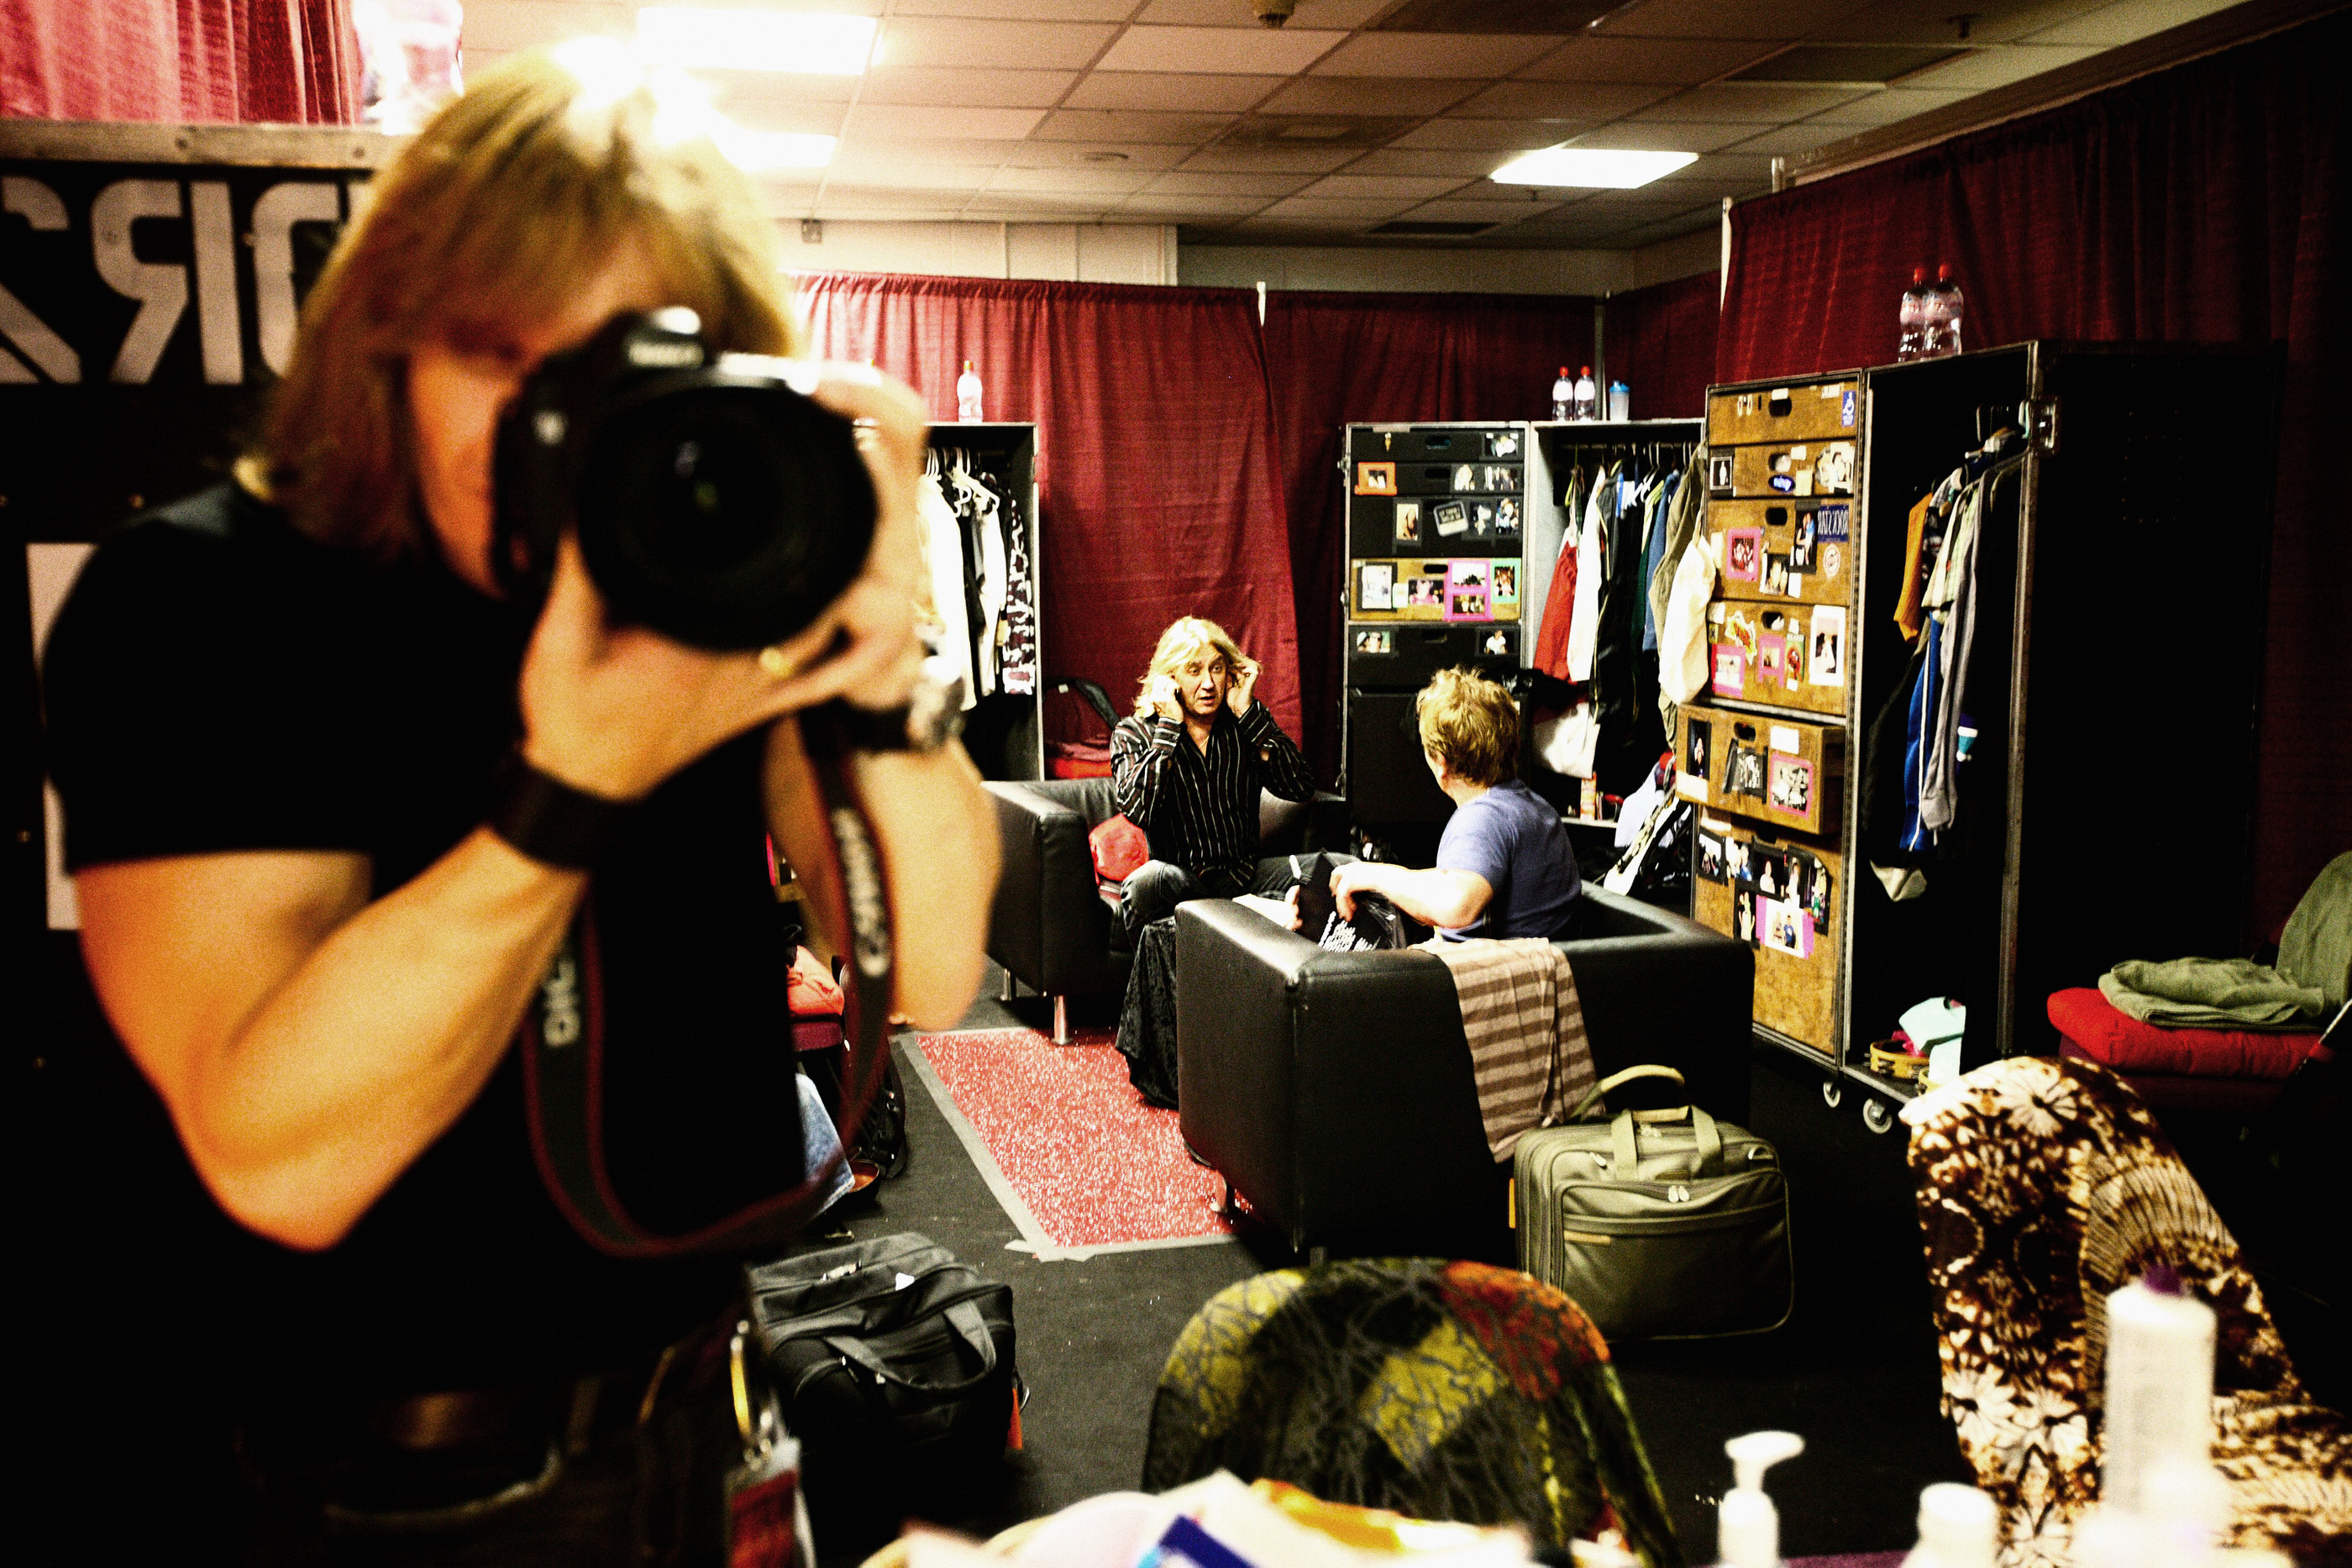 Def Leppard backstage Manchester M.E.N. 2008 by Ash Newell